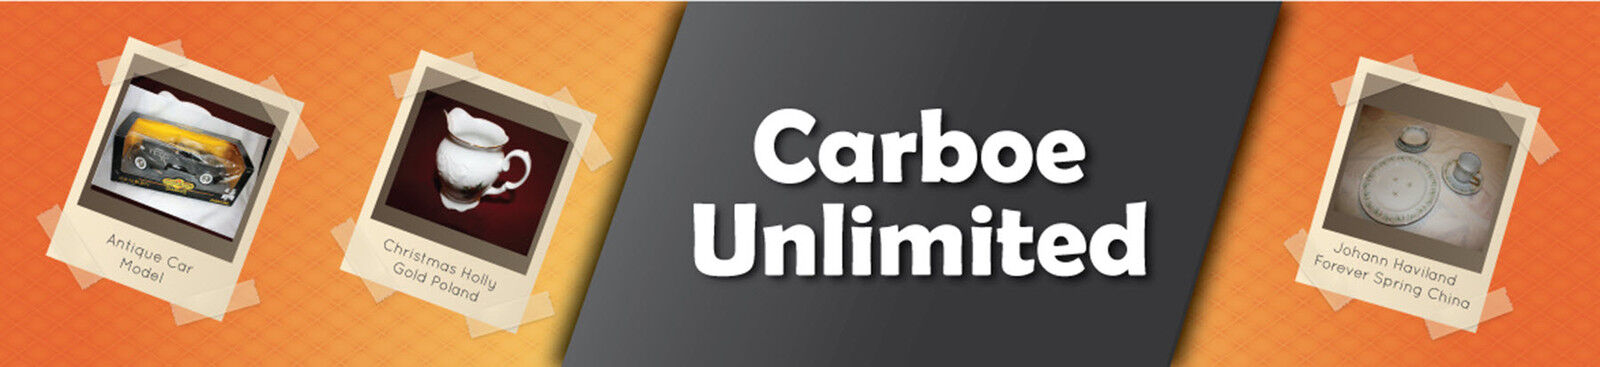 CarboeUnlimited